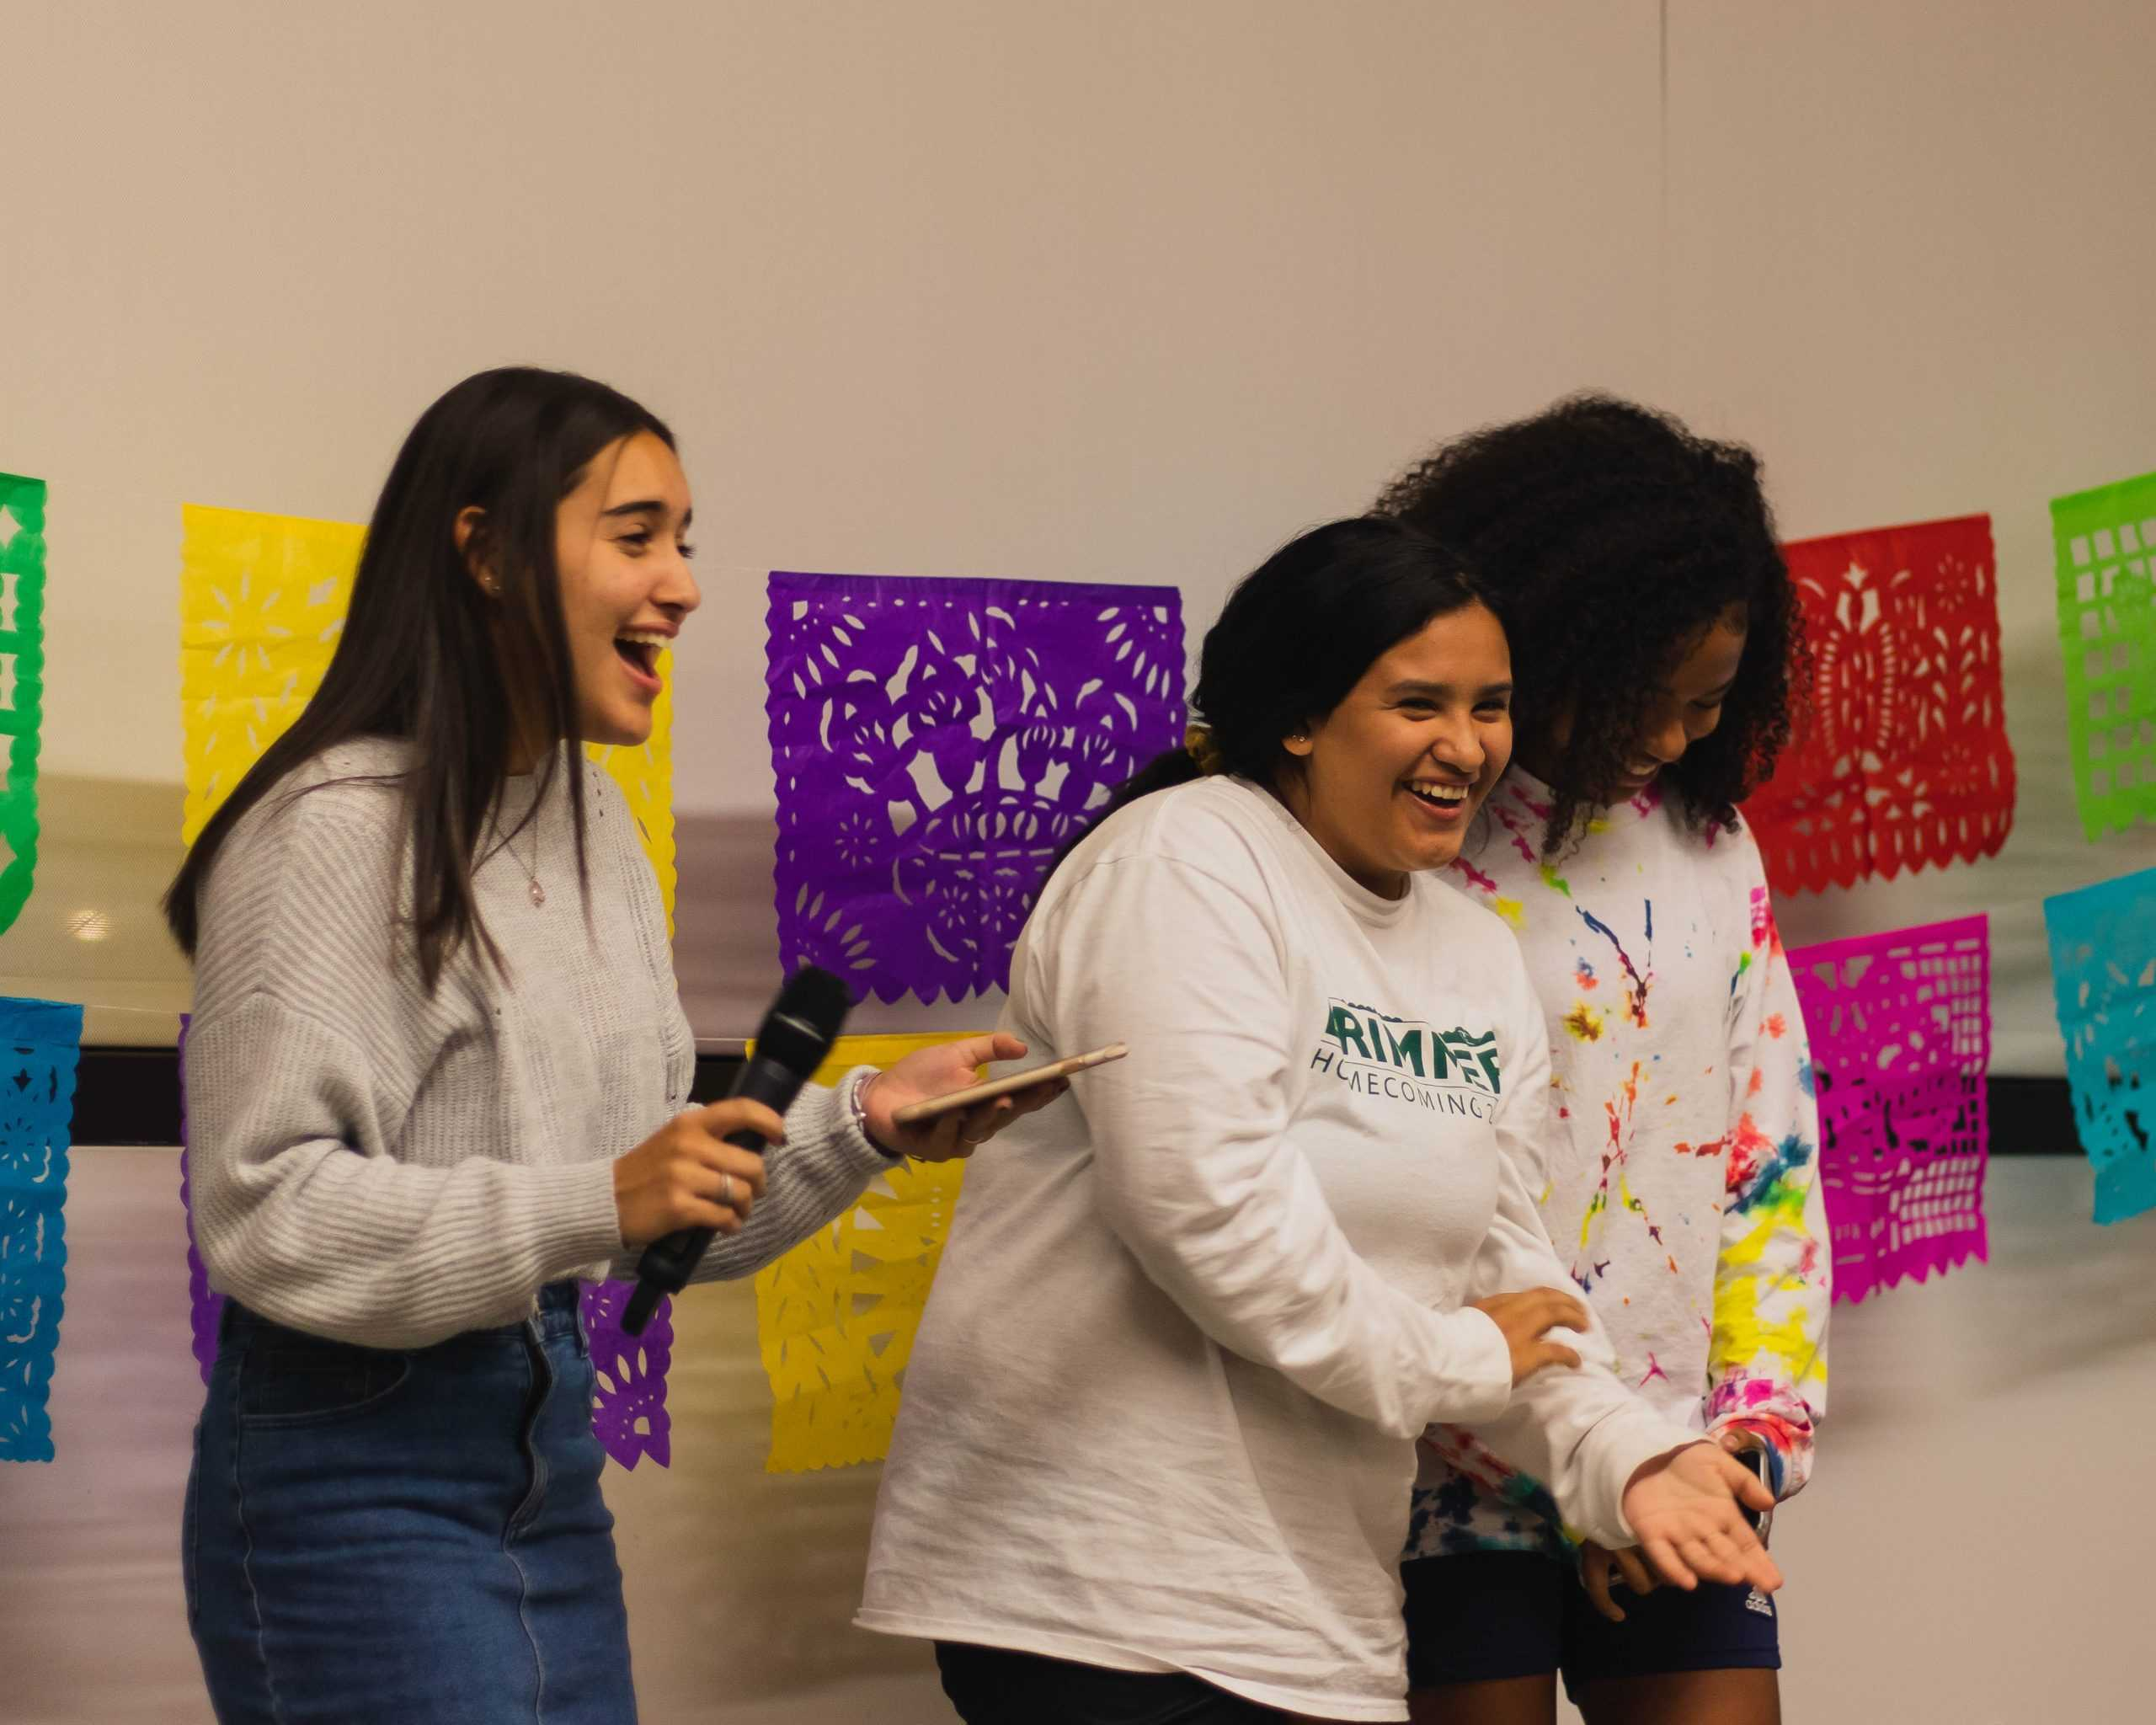 Students%2C+teachers%2C+and+parents+celebrate+Hispanic+Heritage+Month+with+dancing+and+singing.%0D%0A%0D%0A